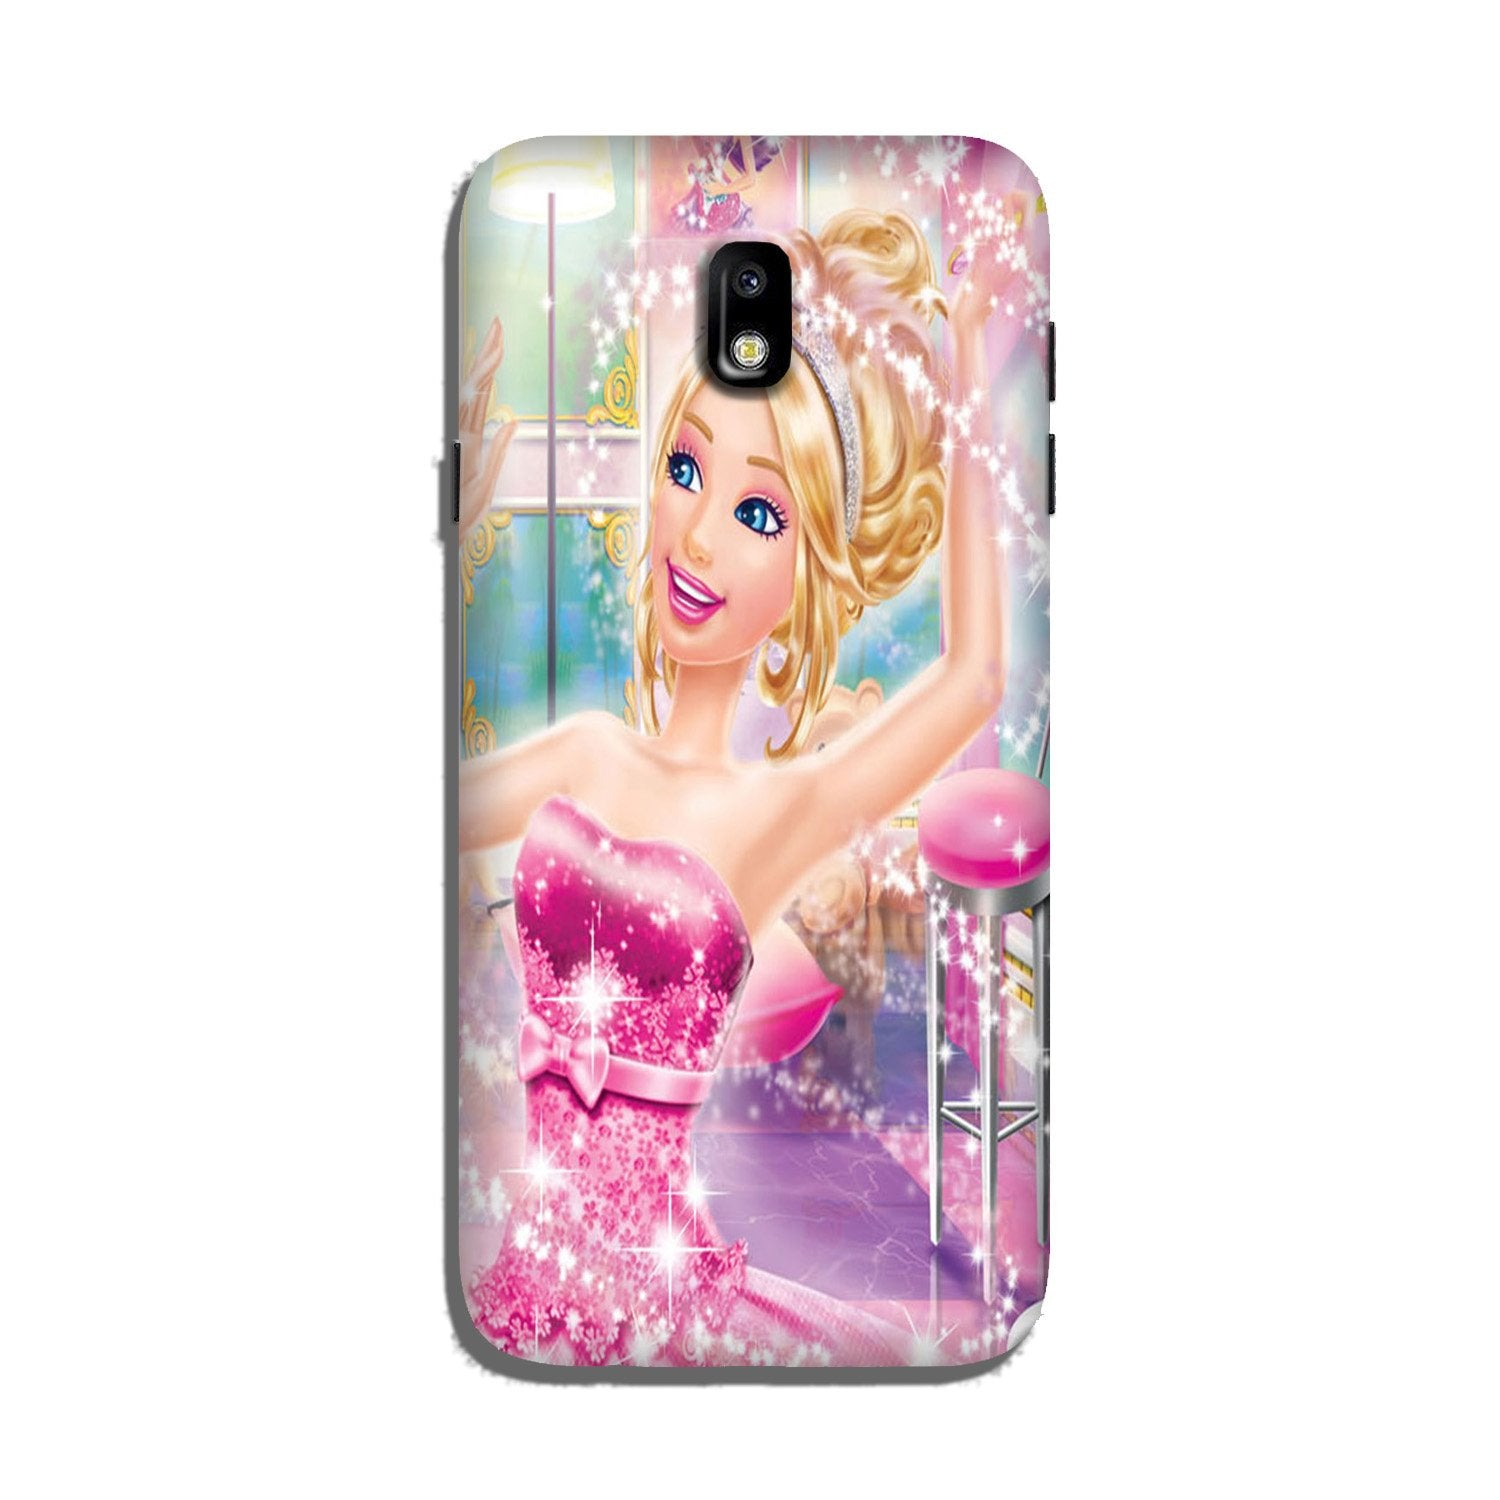 Princesses Case for Galaxy J7 Pro